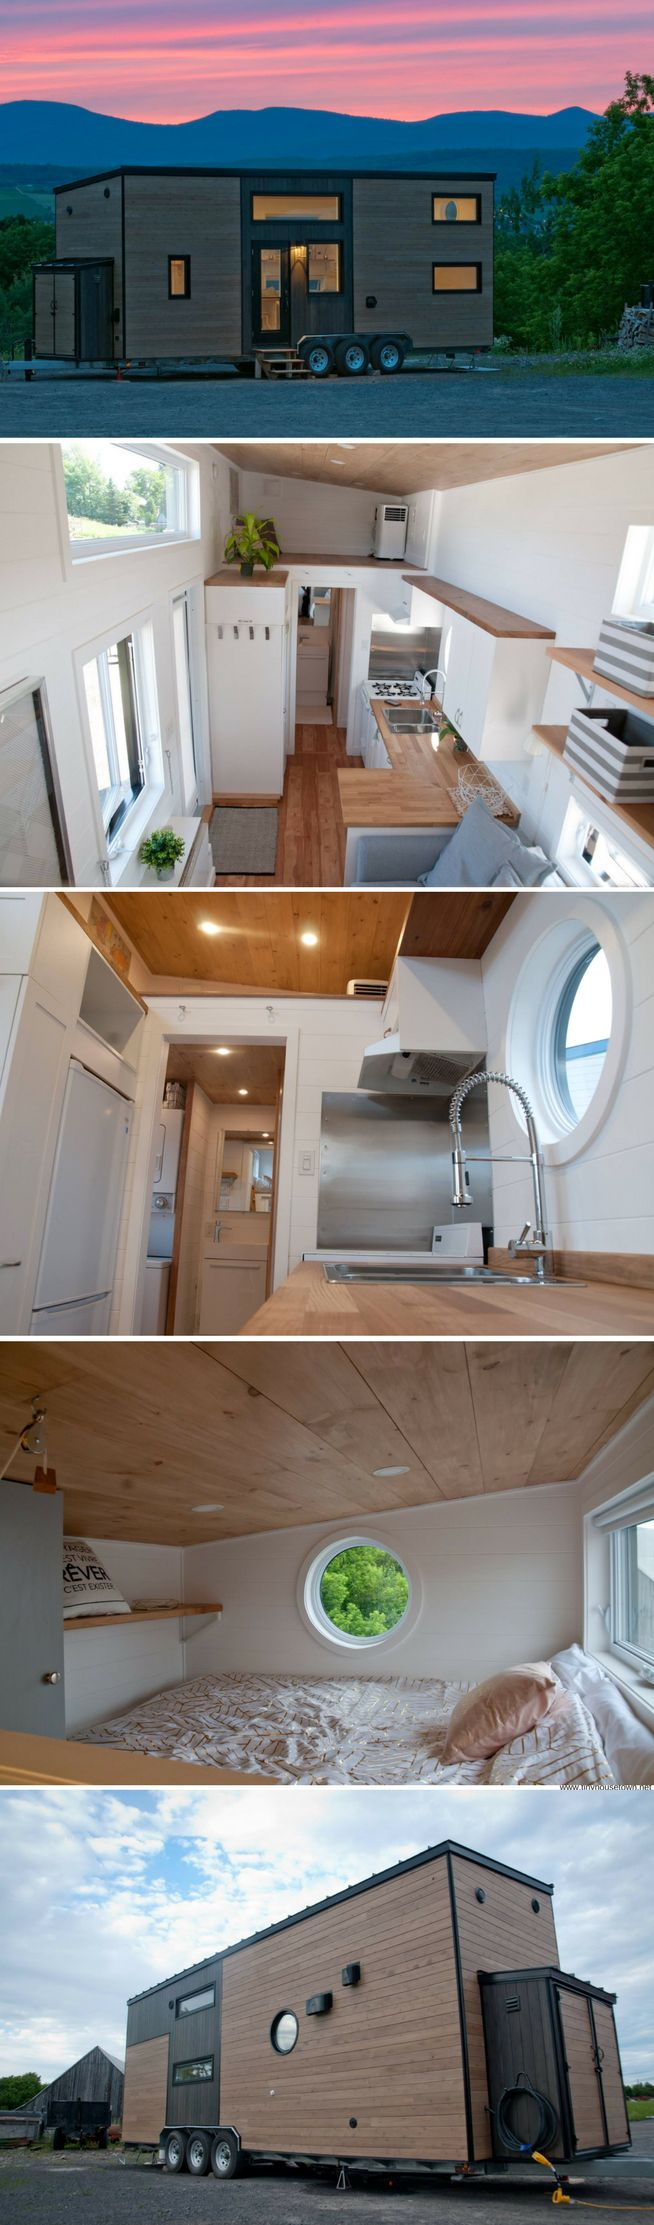 The Acacia tiny house from Mimimaliste  I like the spaces on top of cabinets etc..... can be nice storage or for plants